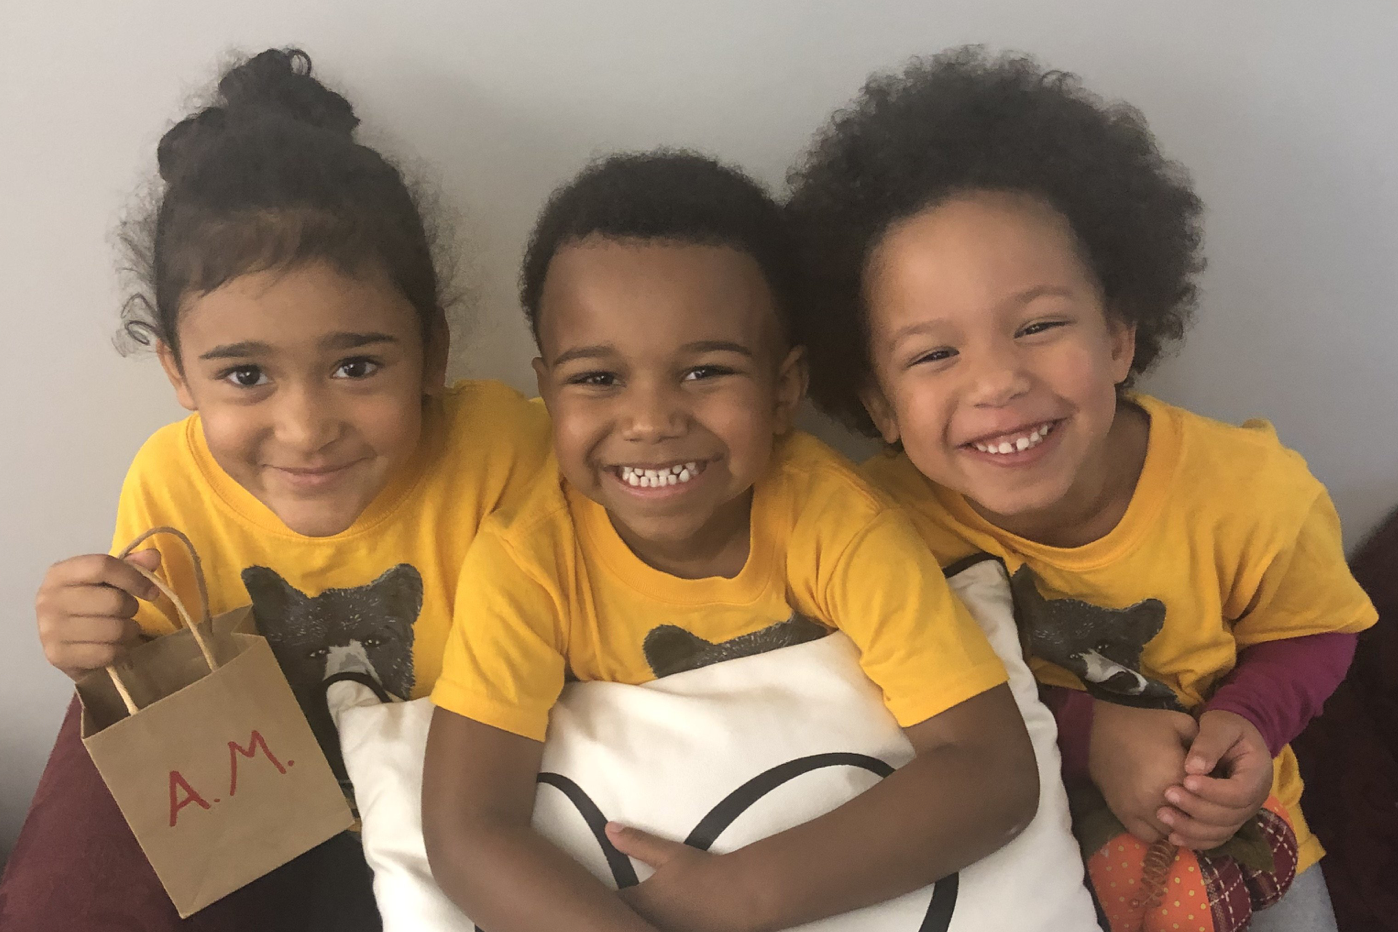 Three children in yellow t-shirts smiling at the camera